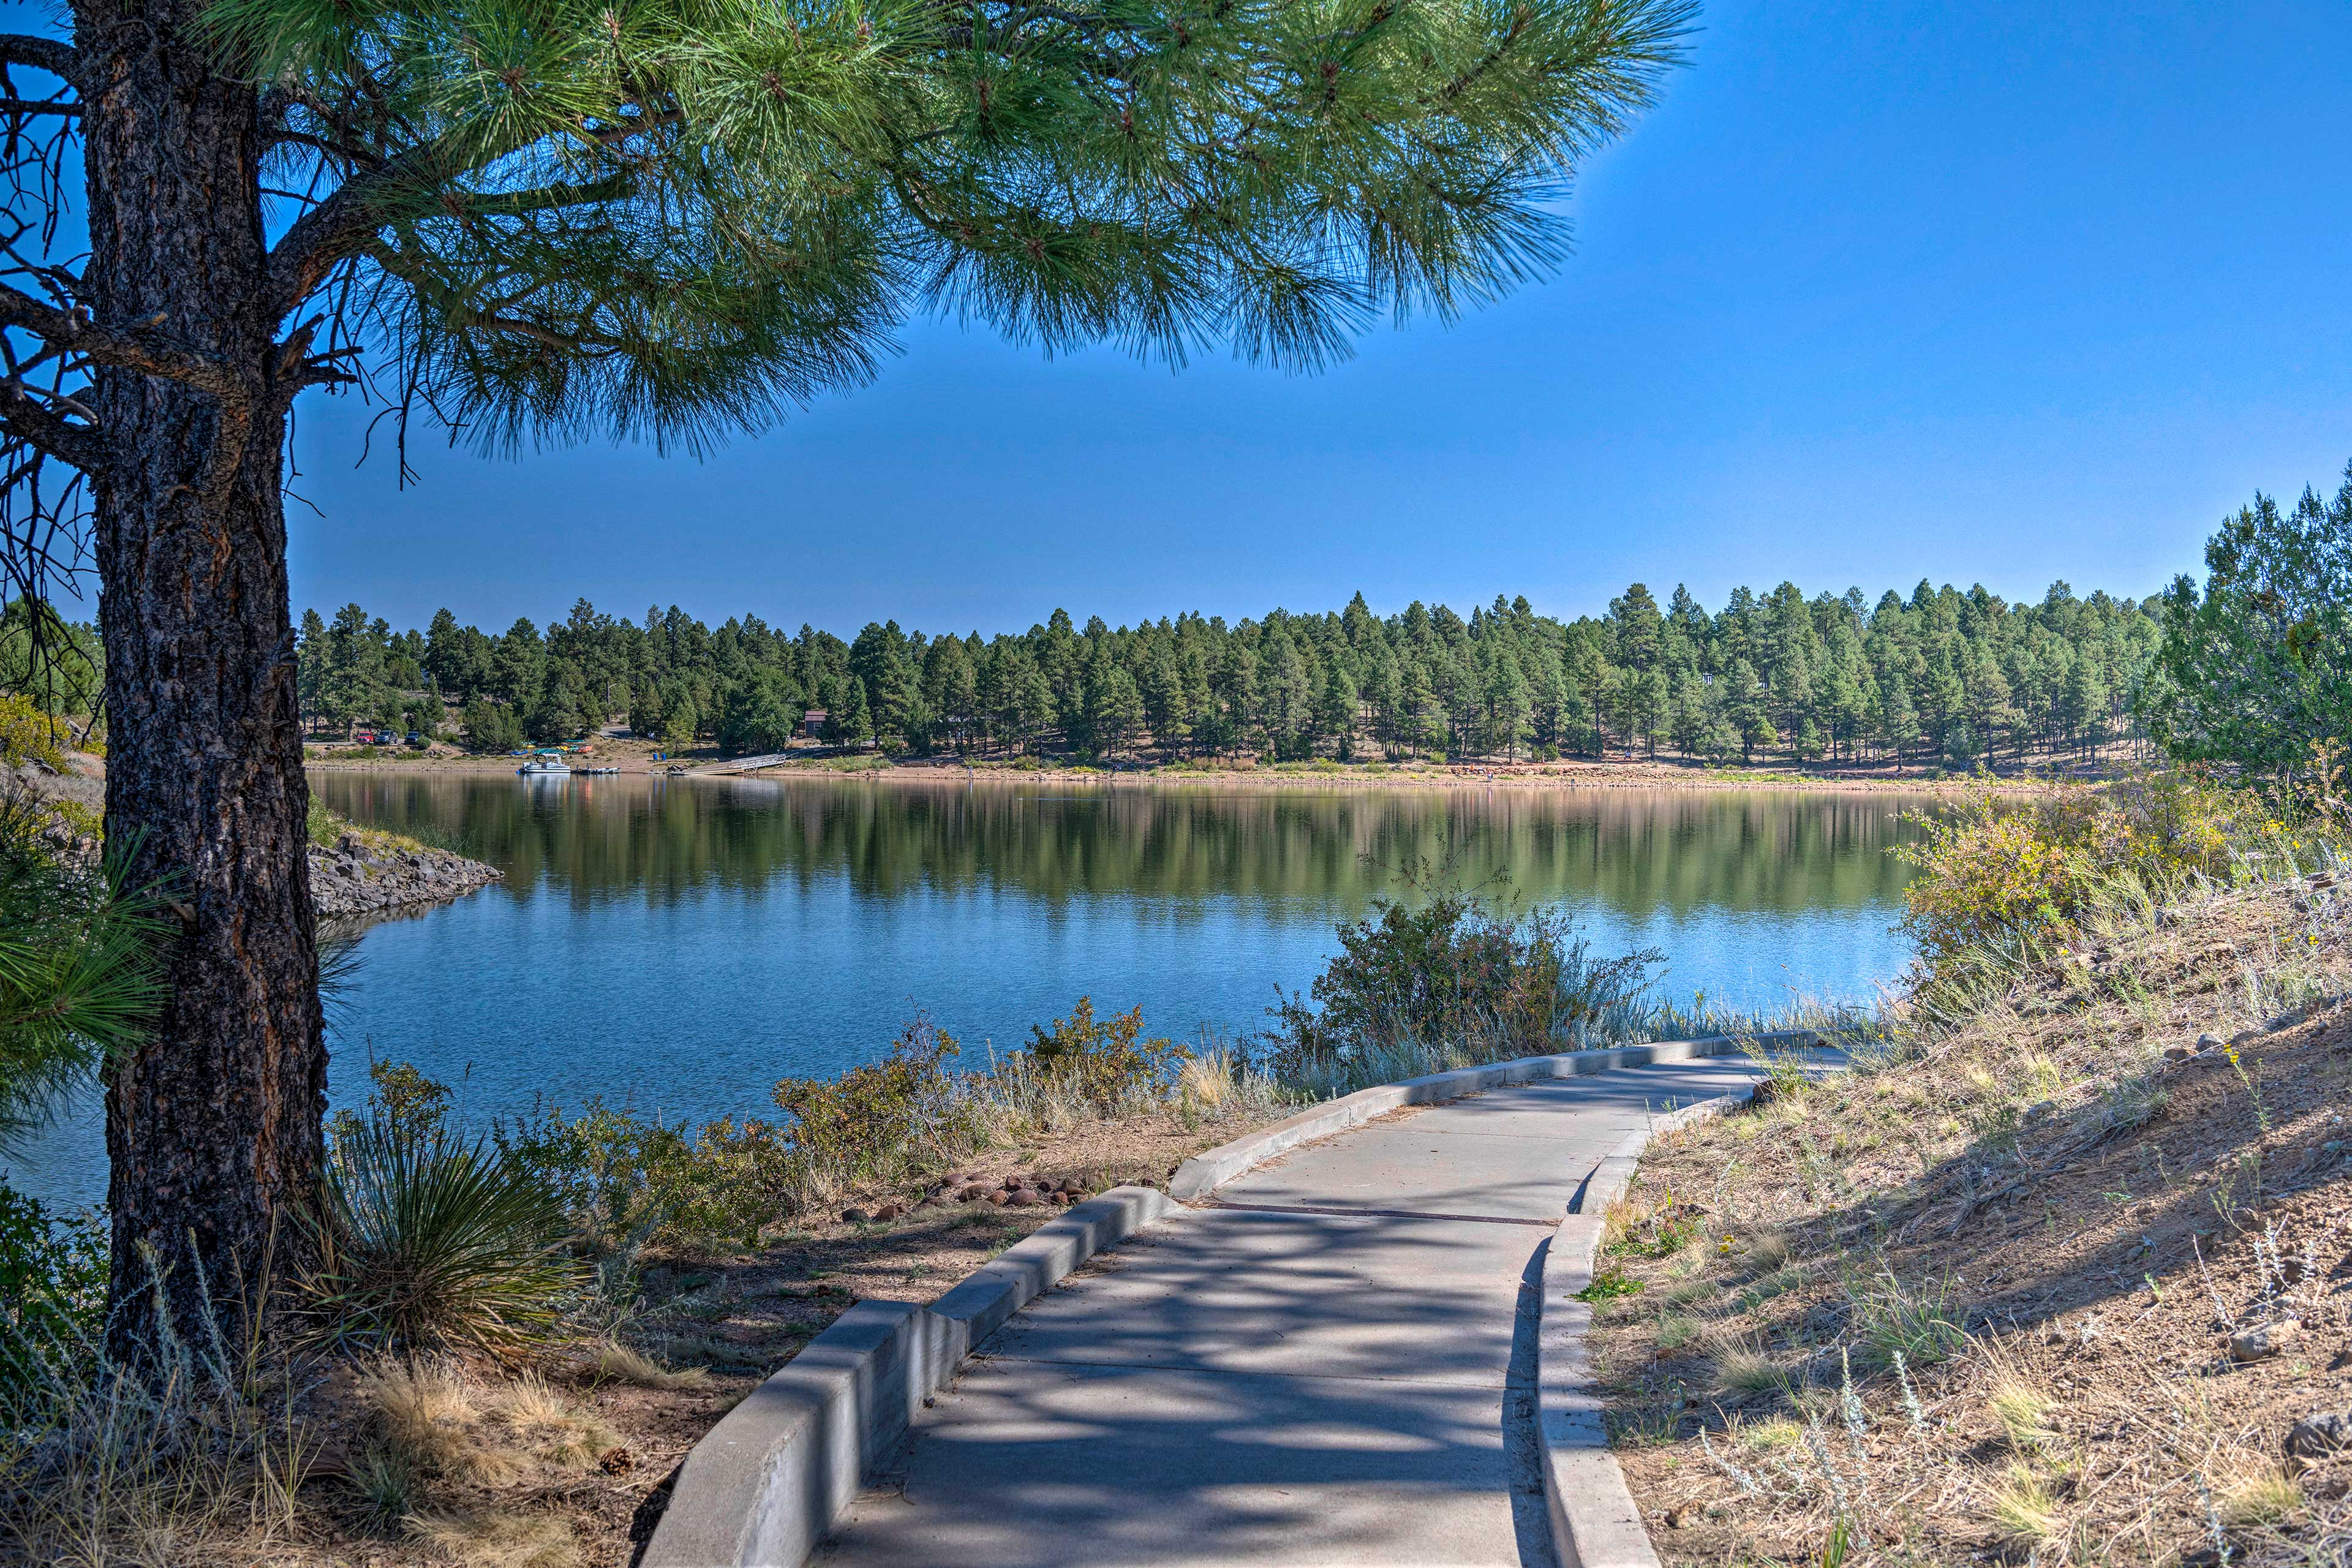 The park offers a 150-acre lake and breathtaking scenery.